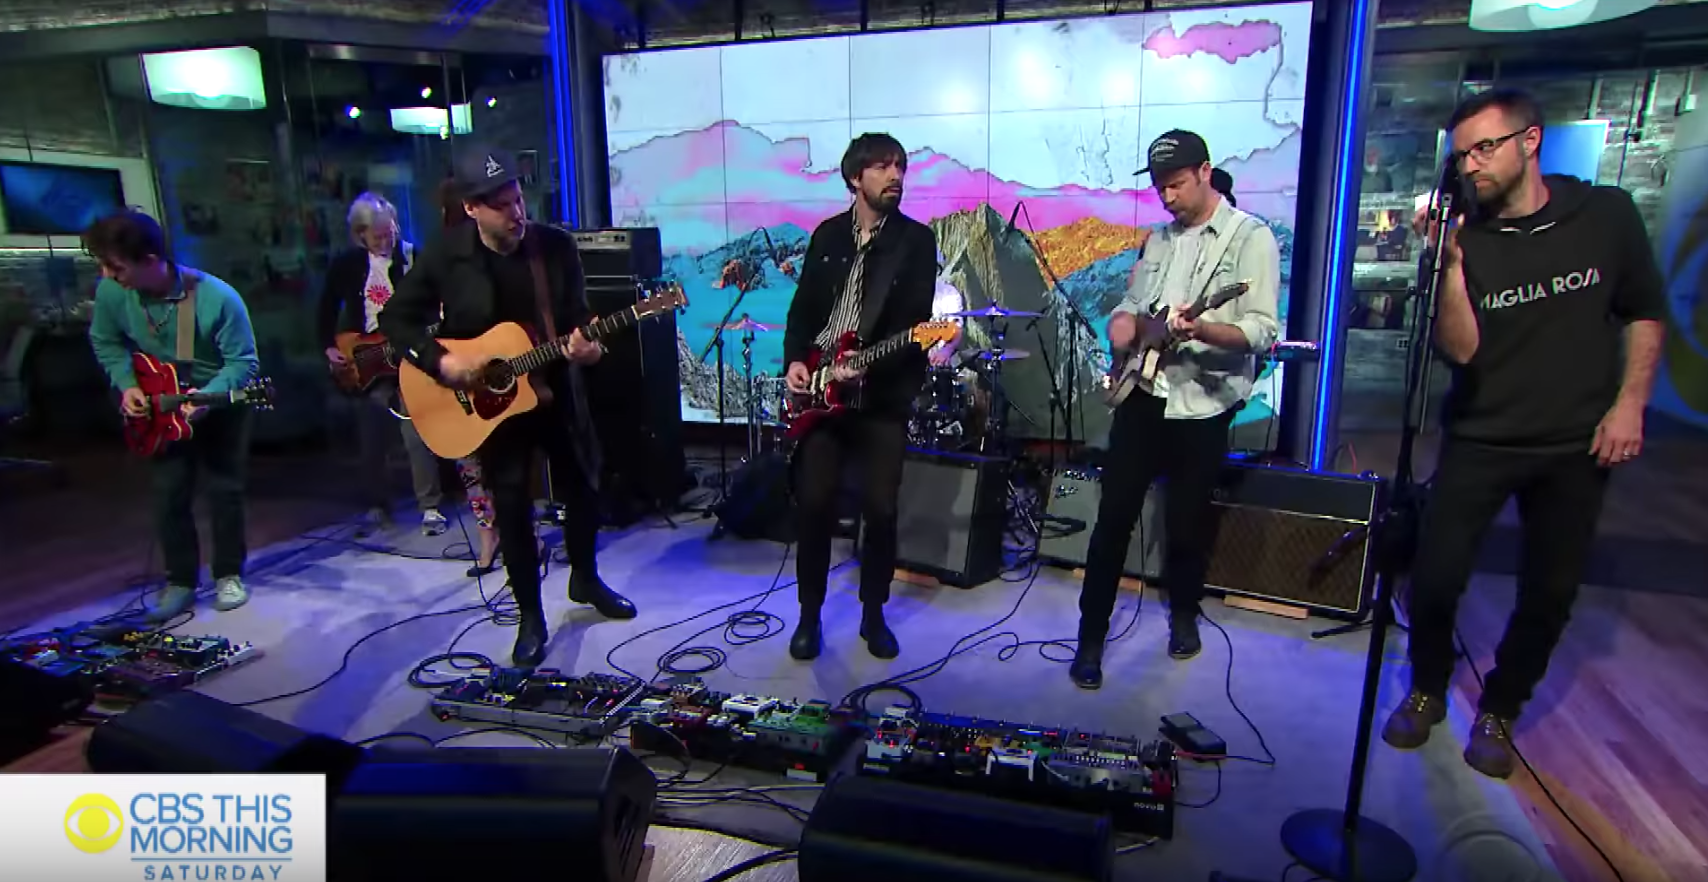 broken-social-scene-play-three-songs-on-cbs-this-morning-watch